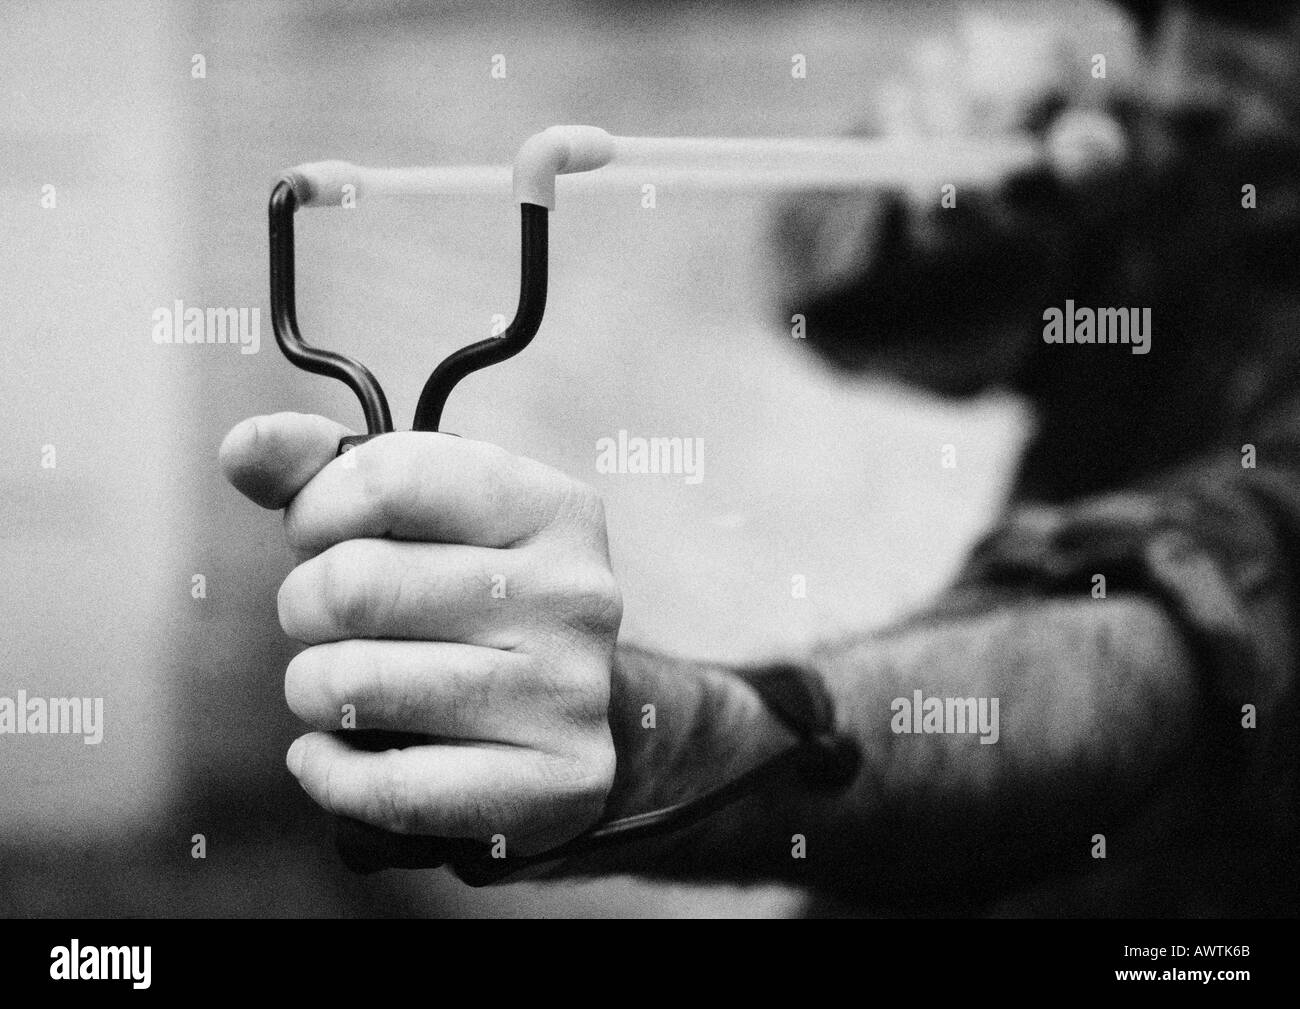 Hands holding sling shot, close-up, b&w - Stock Image